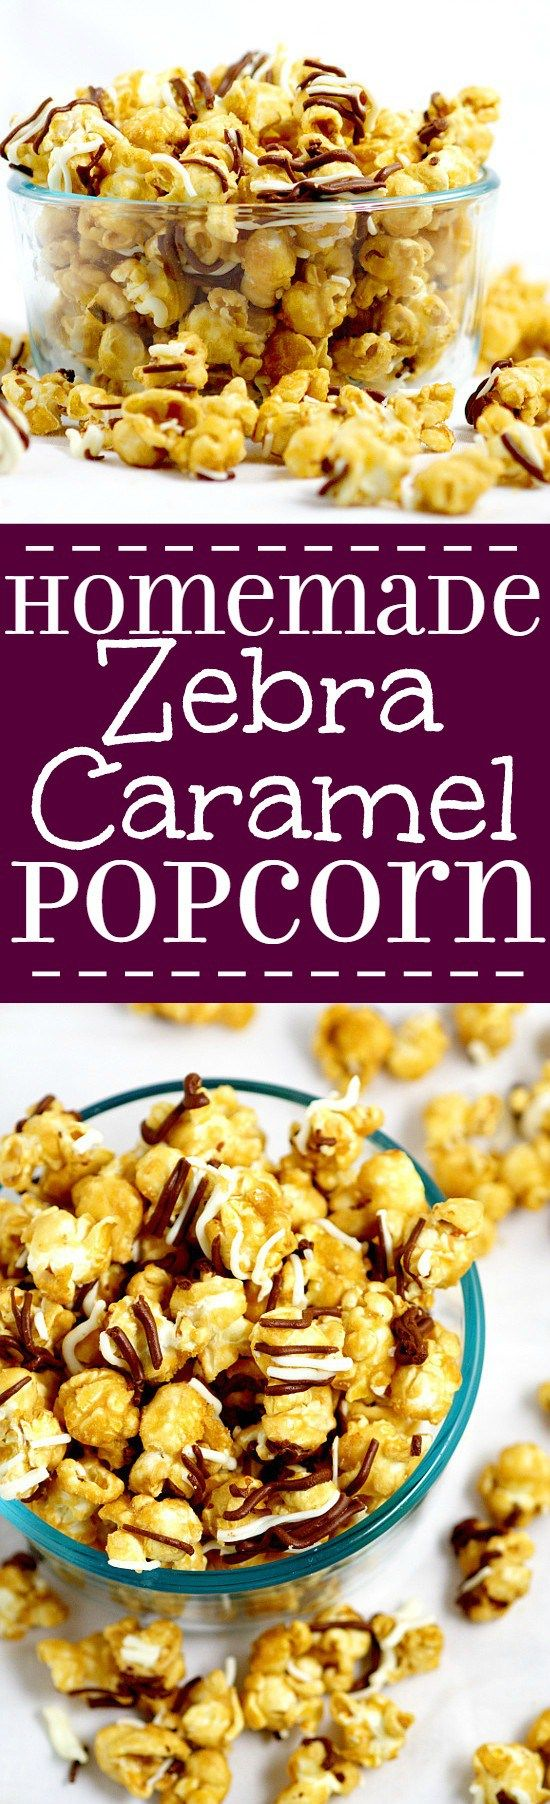 Make your own Homemade Zebra Caramel Popcorn recipe for an easy and sweet snack, treat, or gift idea with warm, sweet oven baked caramel corn, drizzled in milk chocolate and white chocolate for a to-die-for treat. (Snack Mix For Kids)